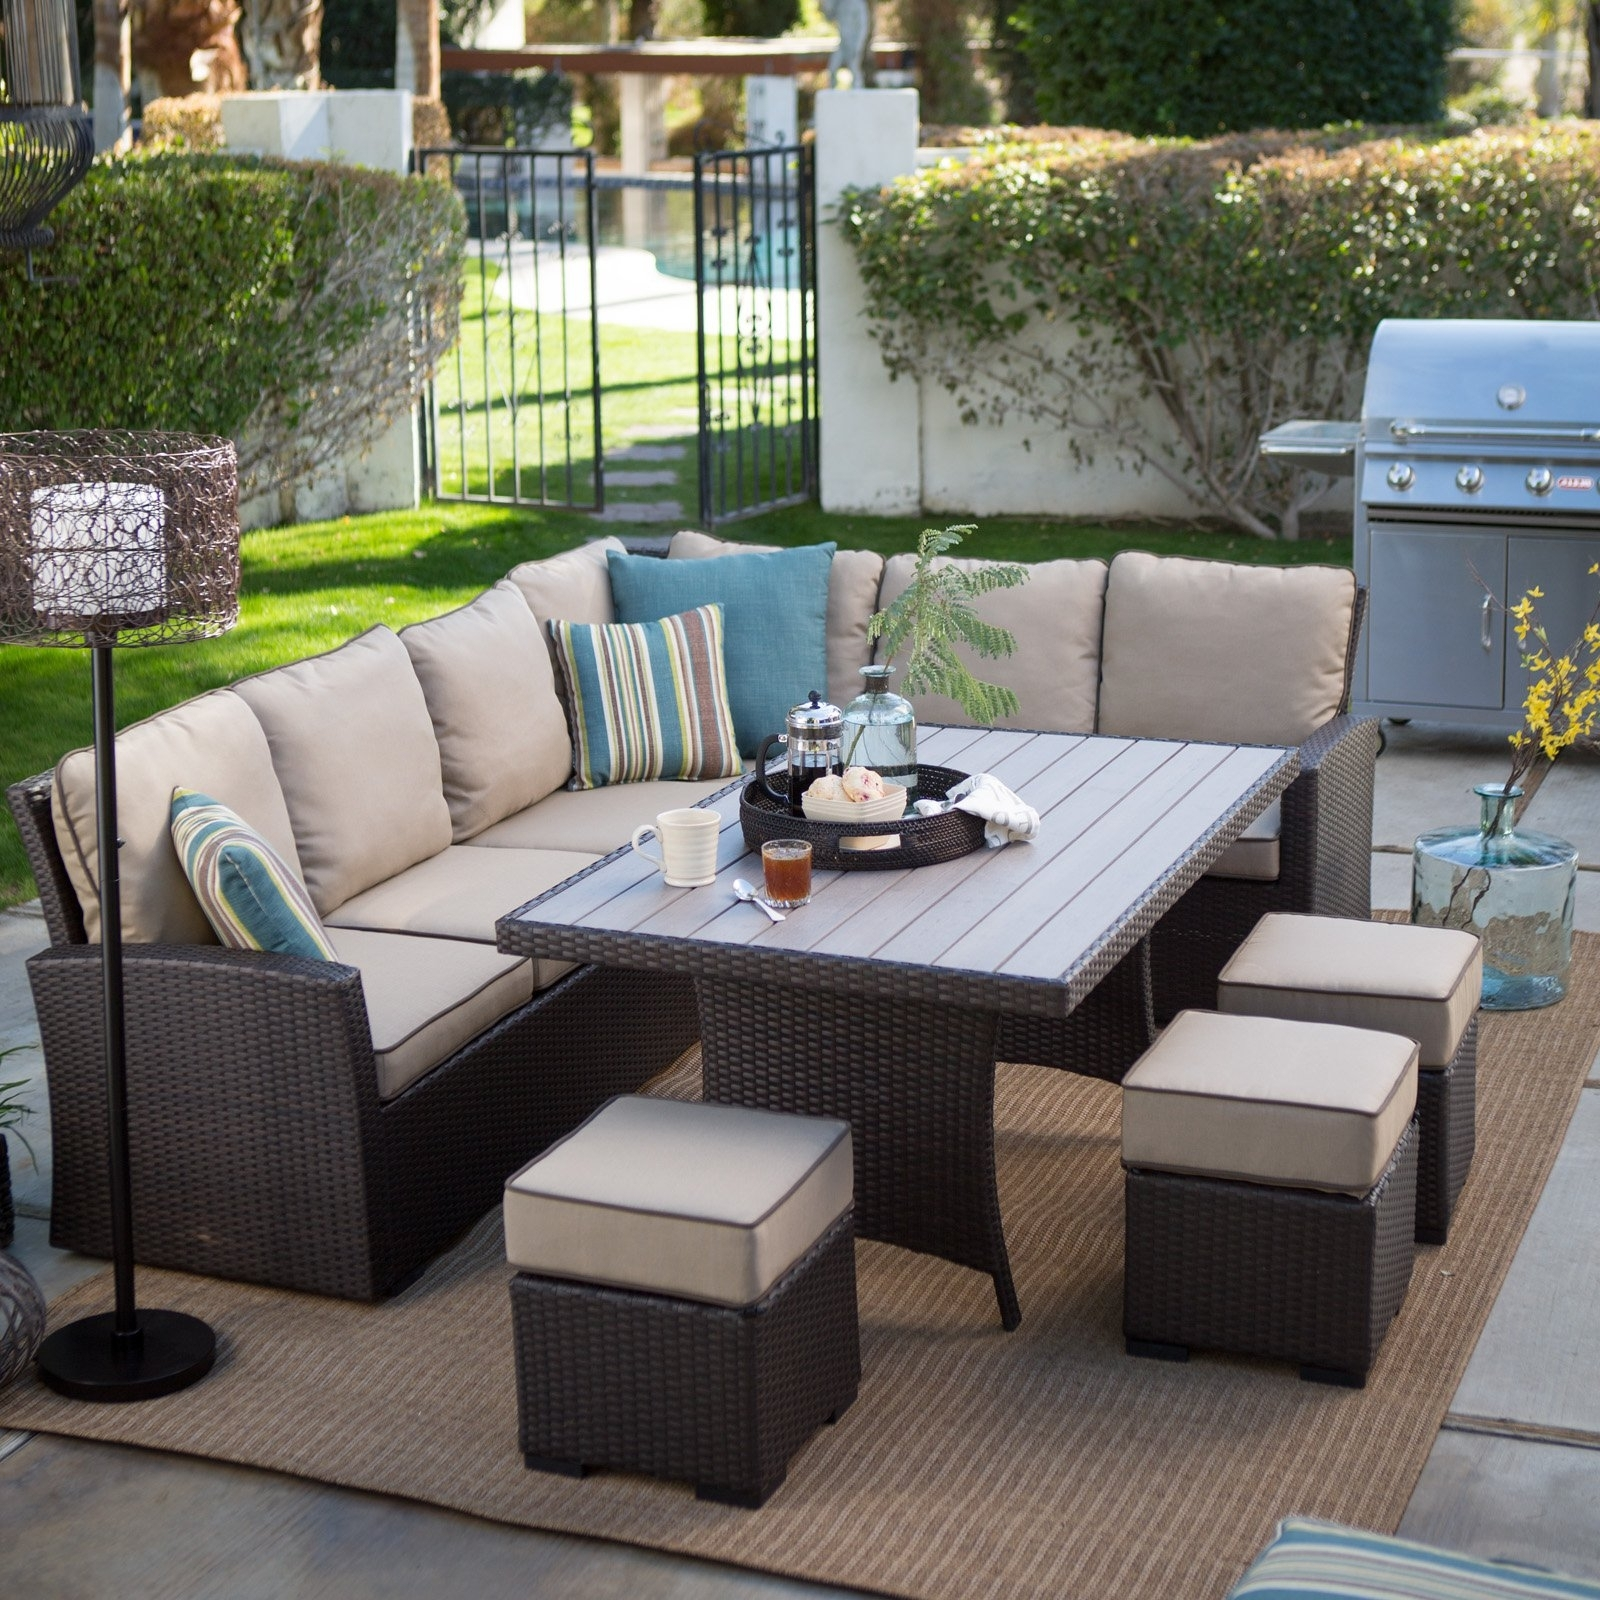 Belham Living Monticello All Weather Wicker Sofa Sectional Patio In Most Popular Resin Conversation Patio Sets (View 2 of 15)